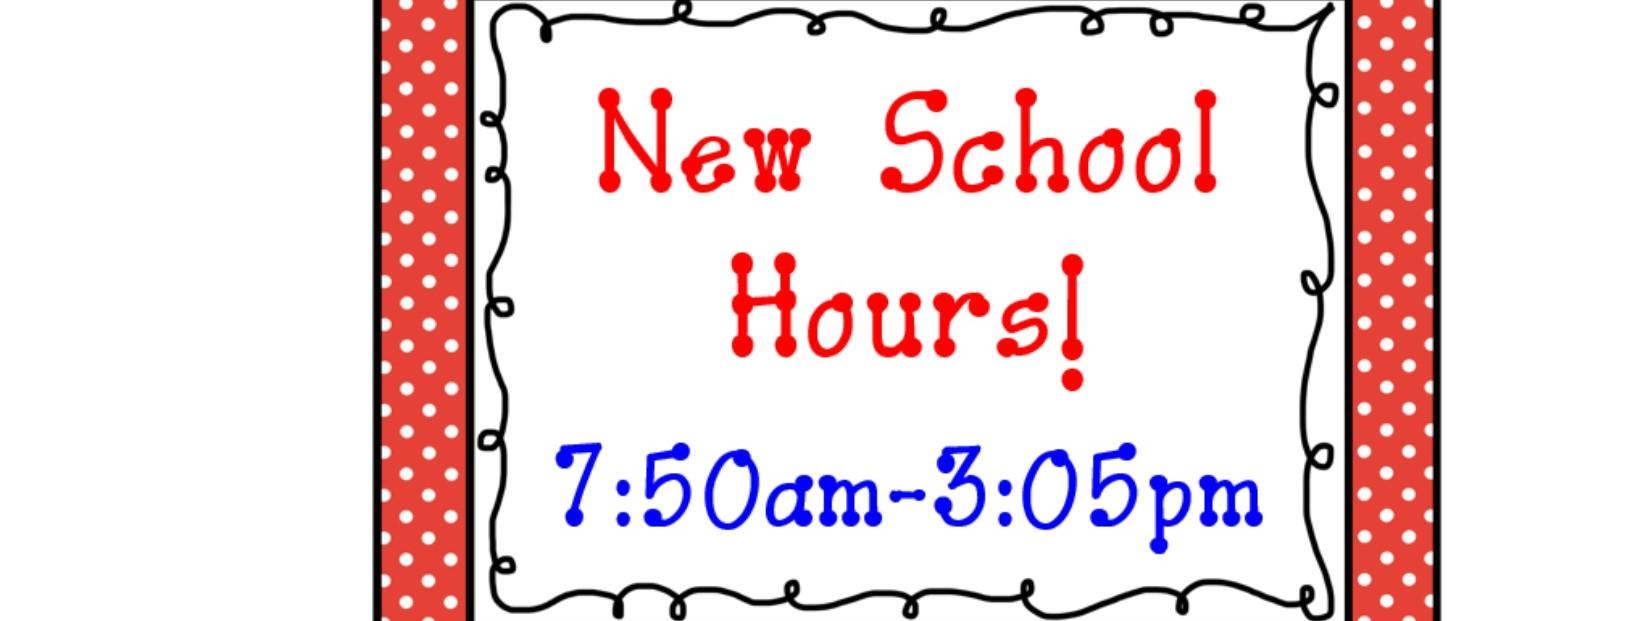 The school day begins at 7:50 am and release time is at 3:05 pm.